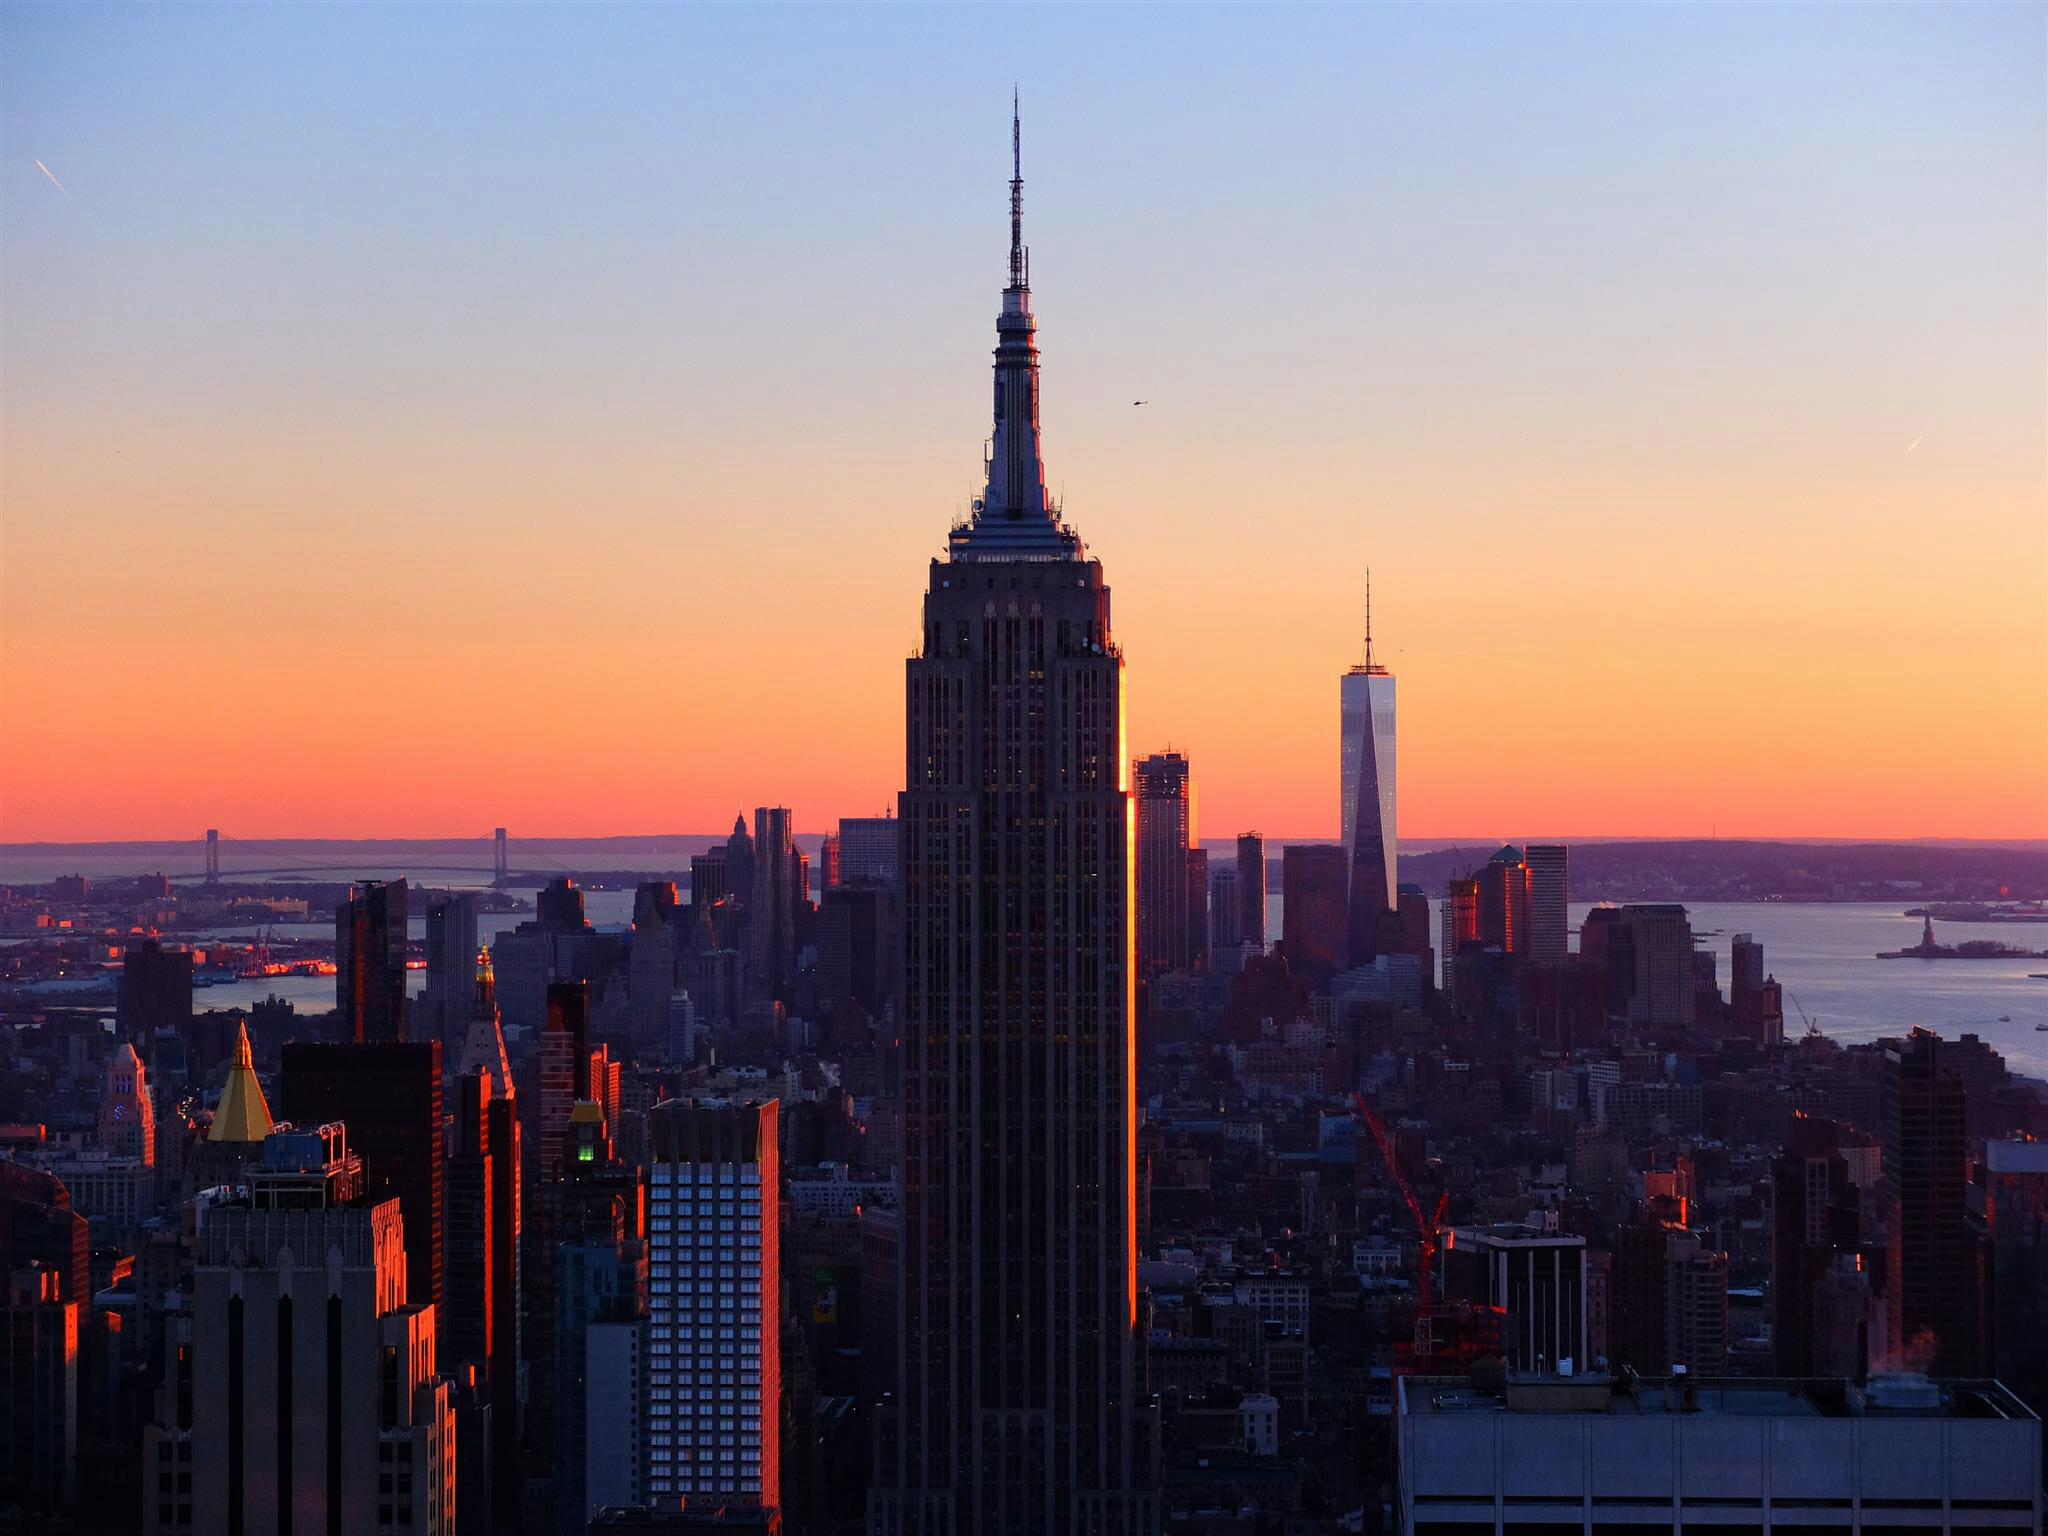 Empire State Building Sunset – High Quality Wallpaper